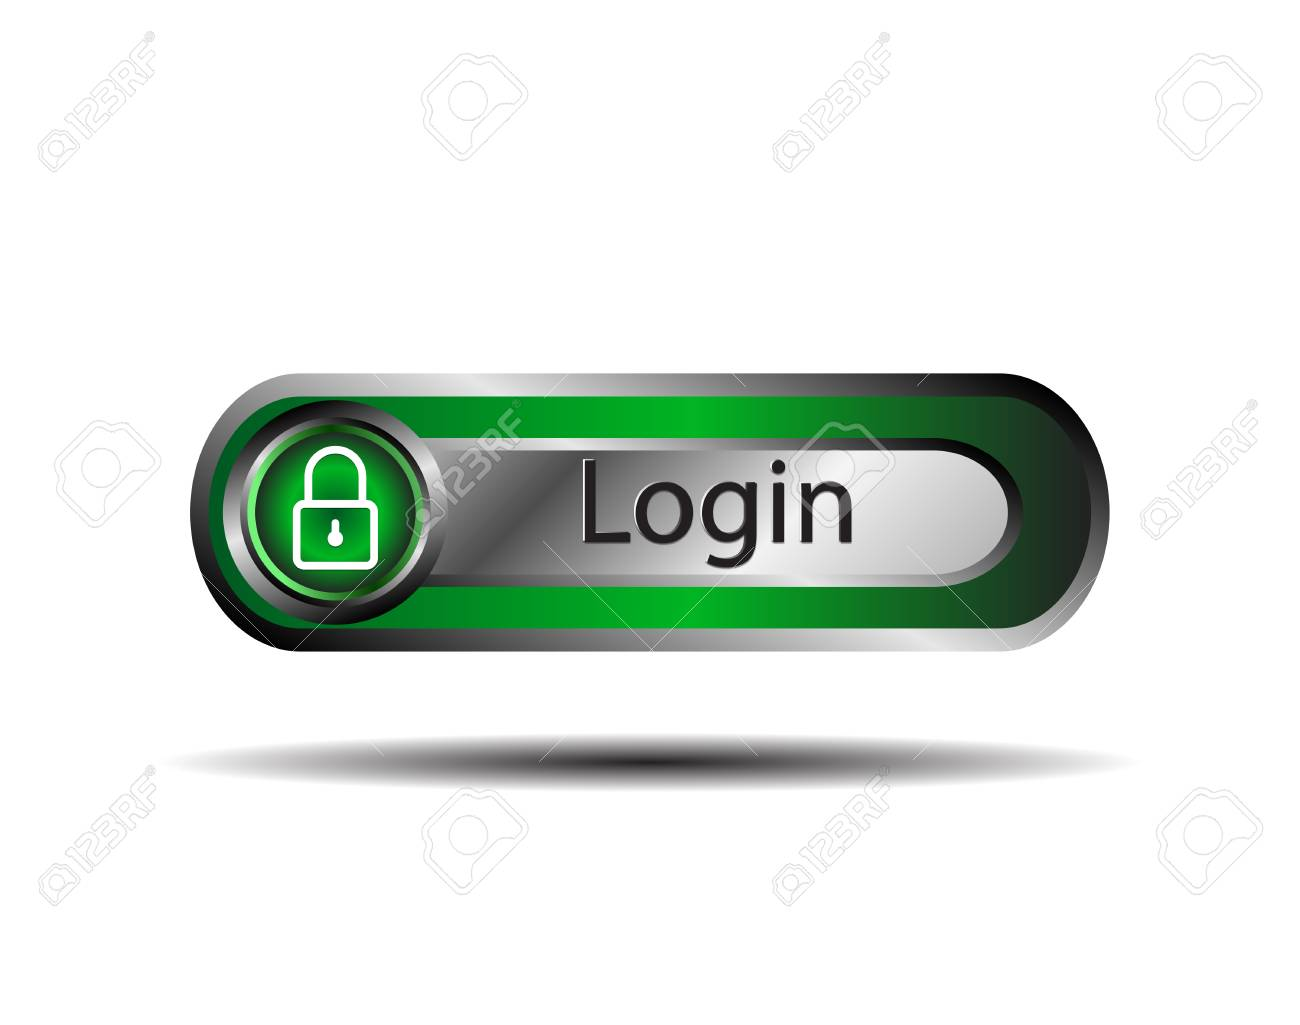 Login button Stock Vector - 31611187